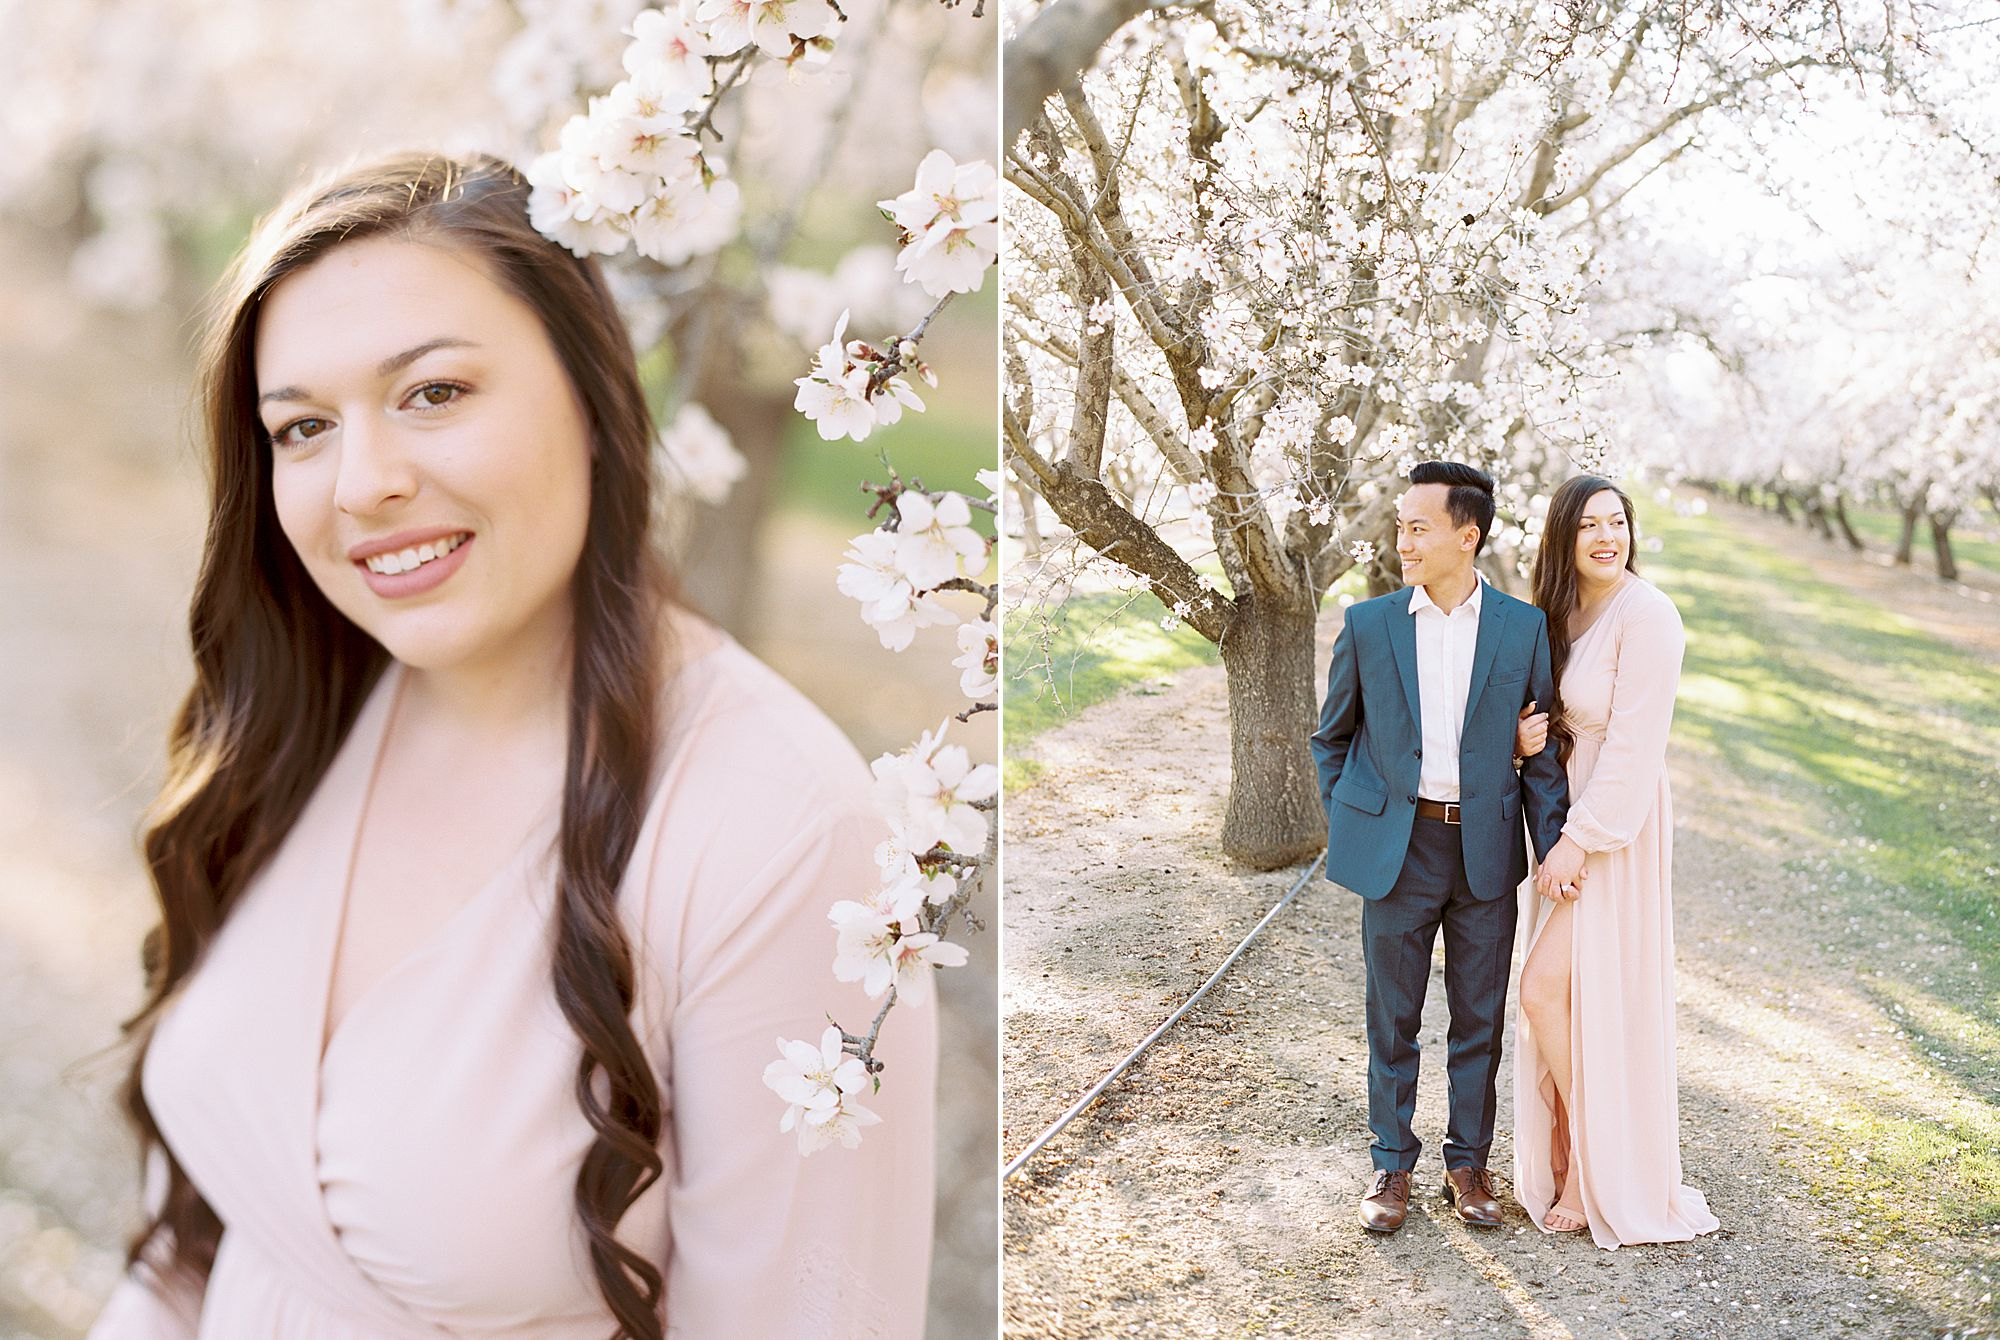 Almond Orchard Engagement Session - Caley and Tyler - Lone Oak Wedding - Ashley Baumgartner - Almond Blossom_0007.jpg